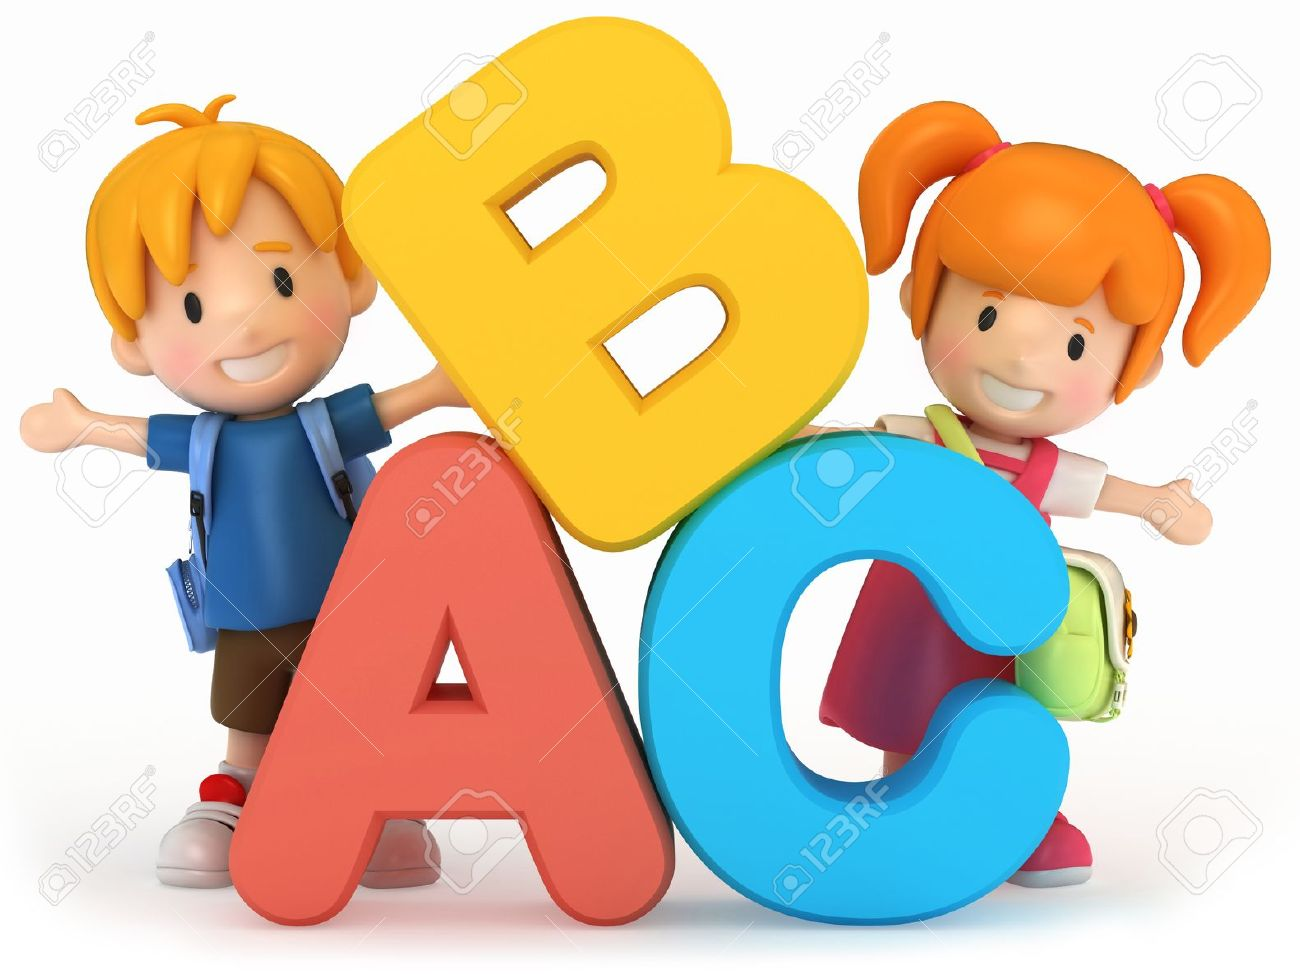 3D Render Of School Kids With ABC Stock Photo